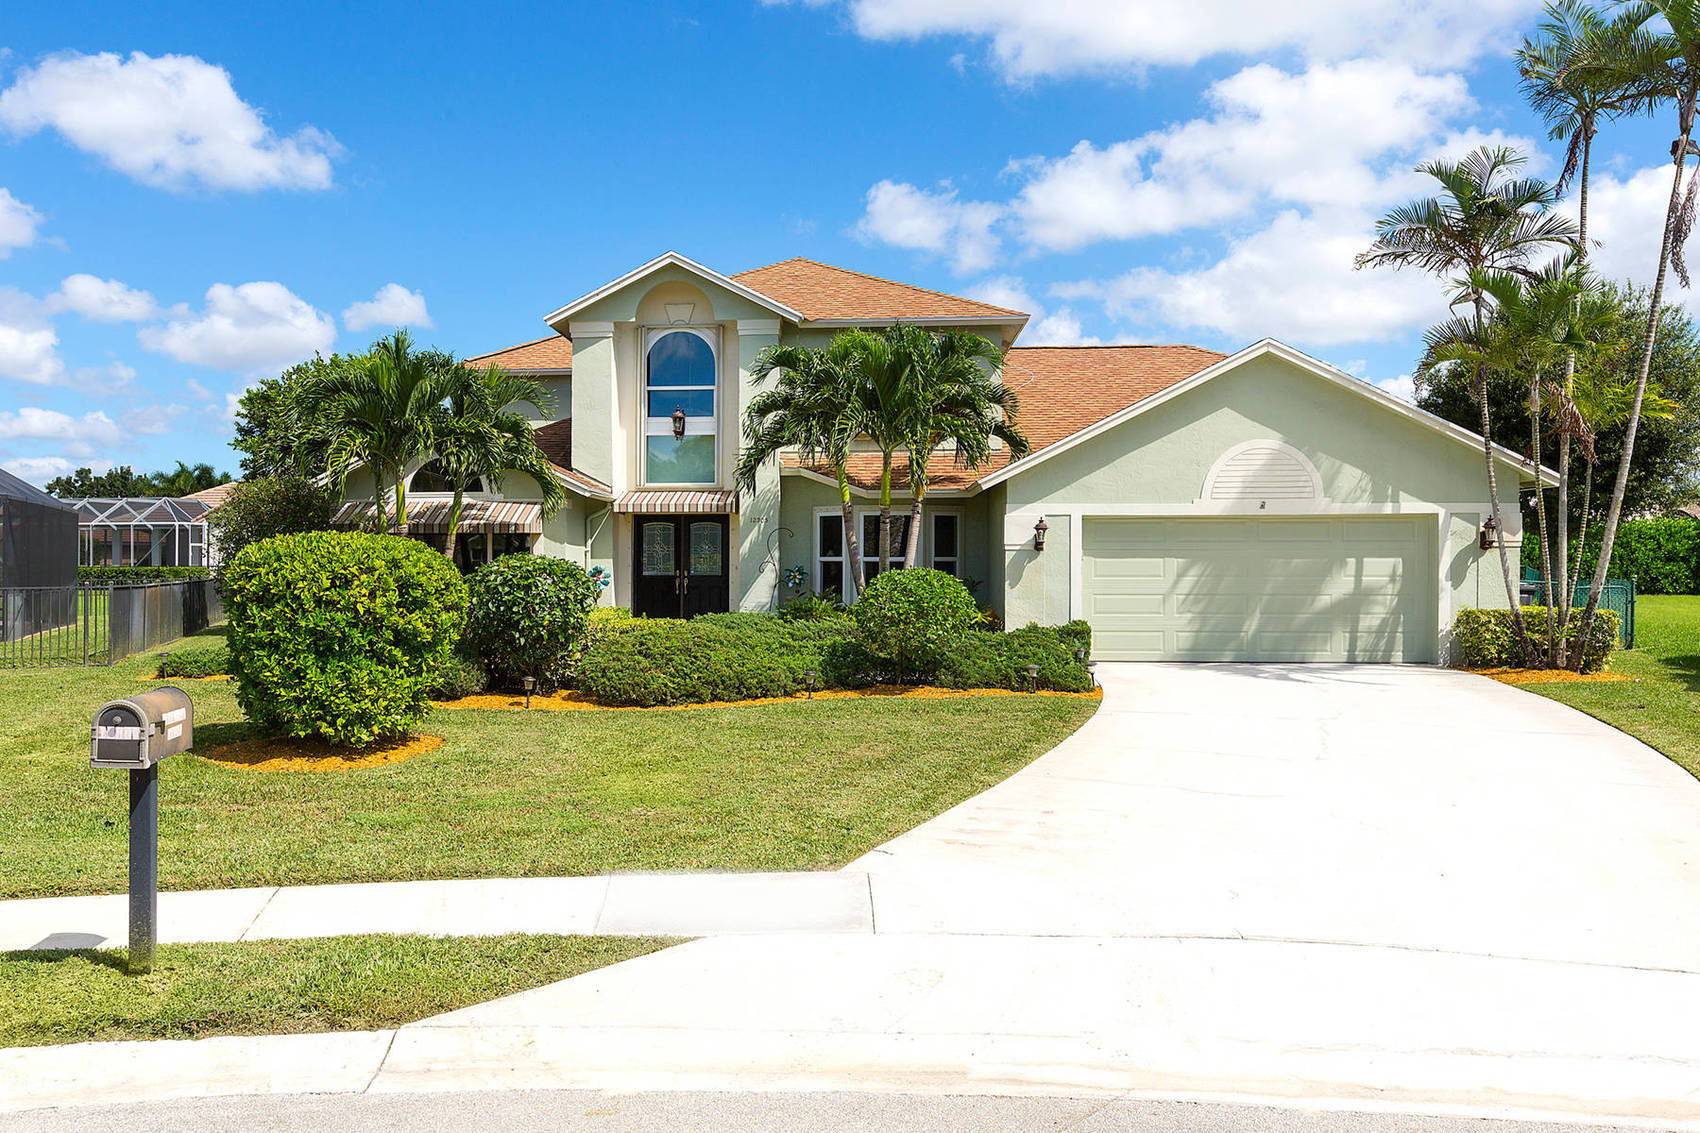 (Pending) 12905 Millford Ct.